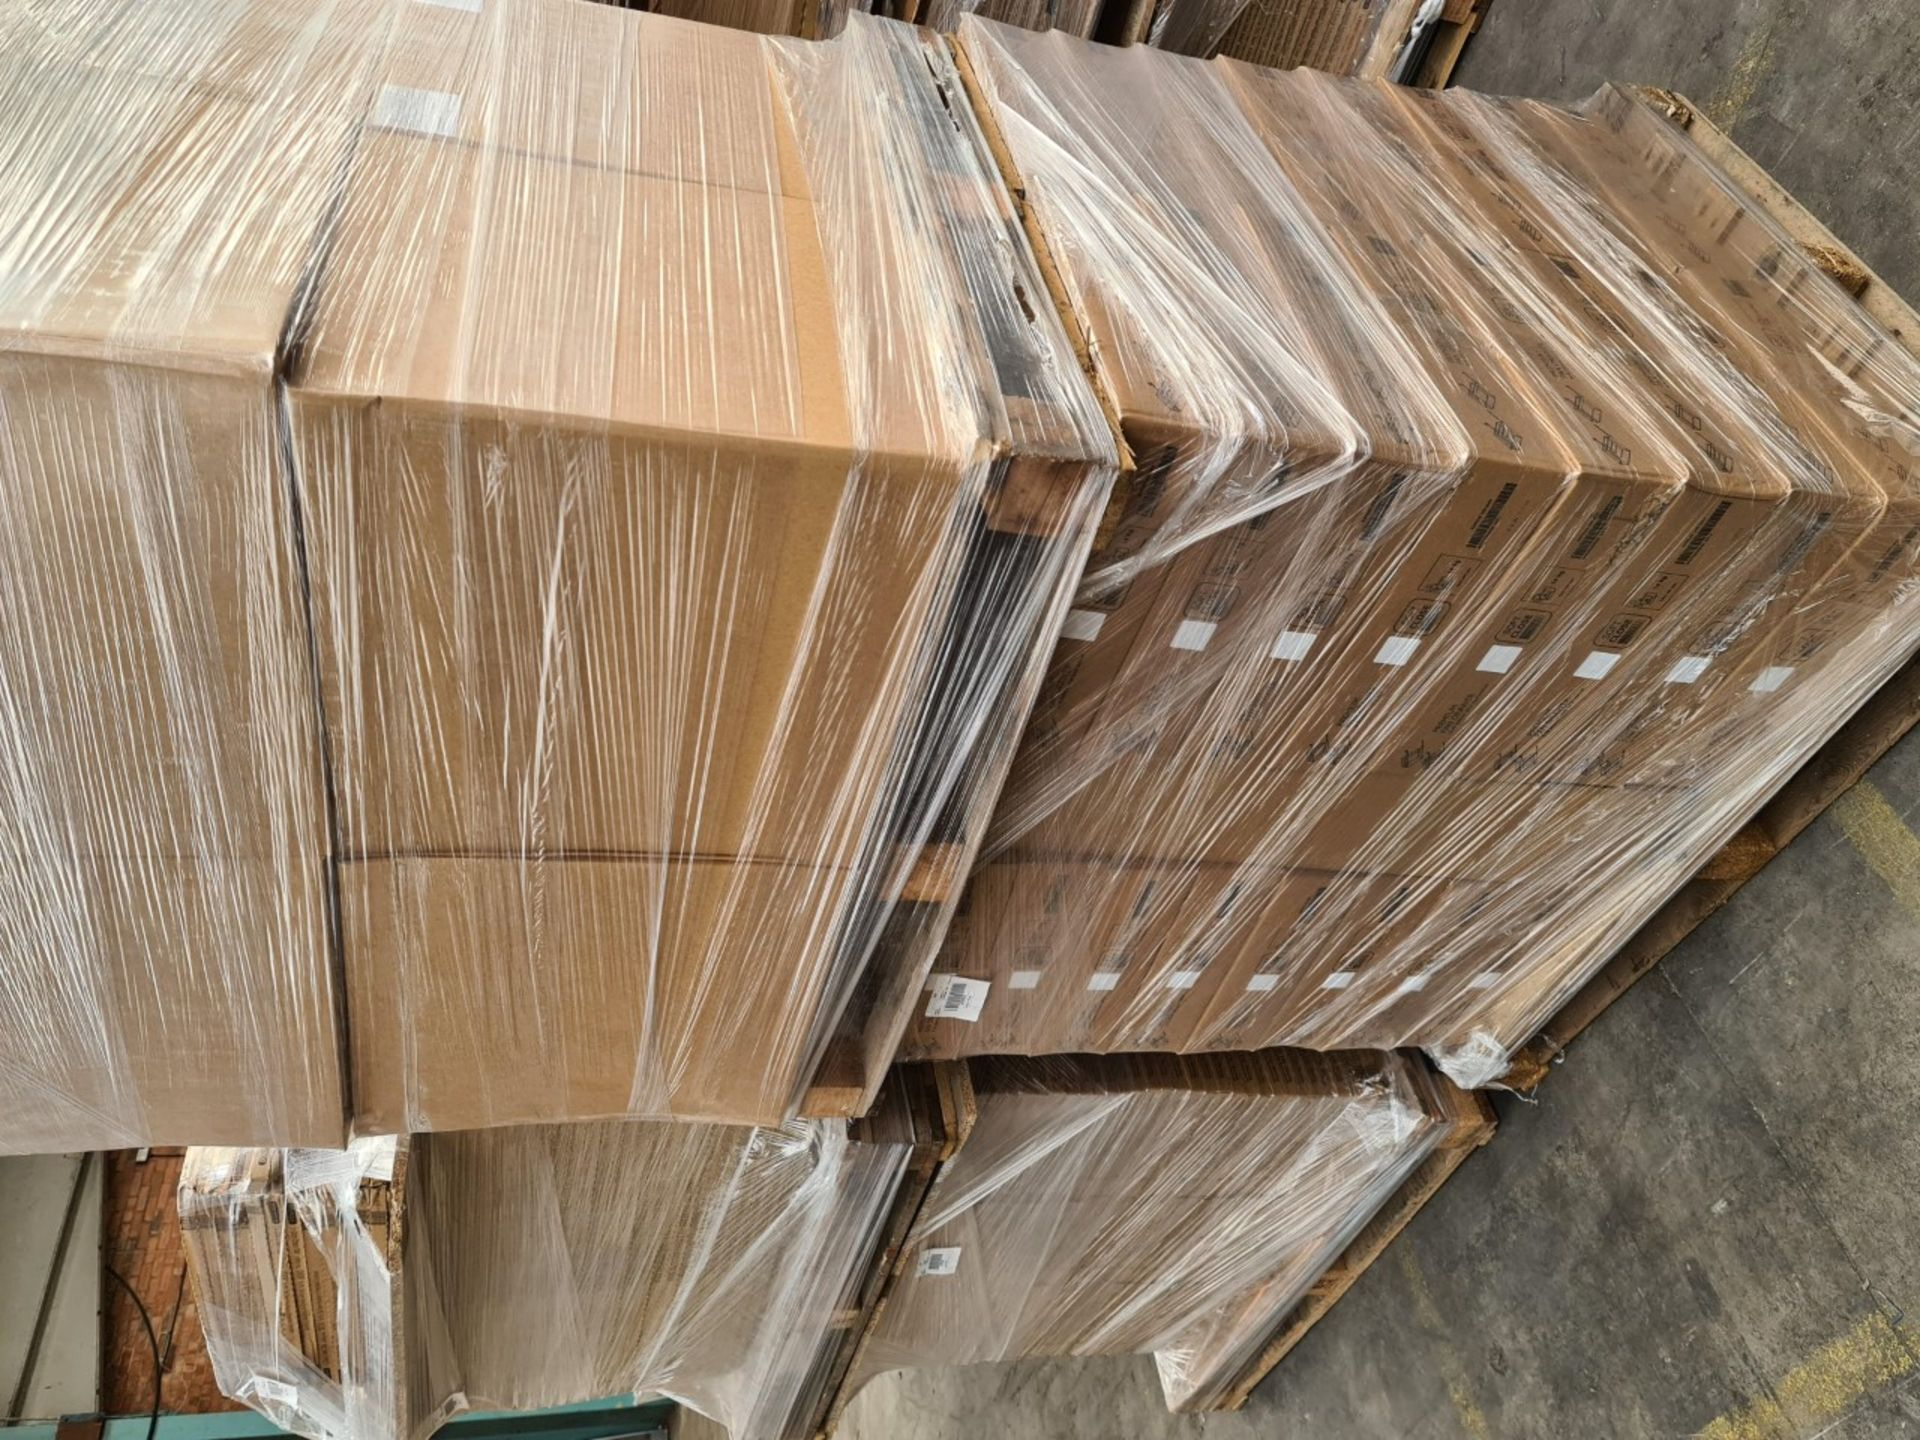 Kitchen Distributor Stock Liquidation-Circa 5,040 items of Brand-New Kitchen Goods - Sold As One Lot - Image 20 of 42